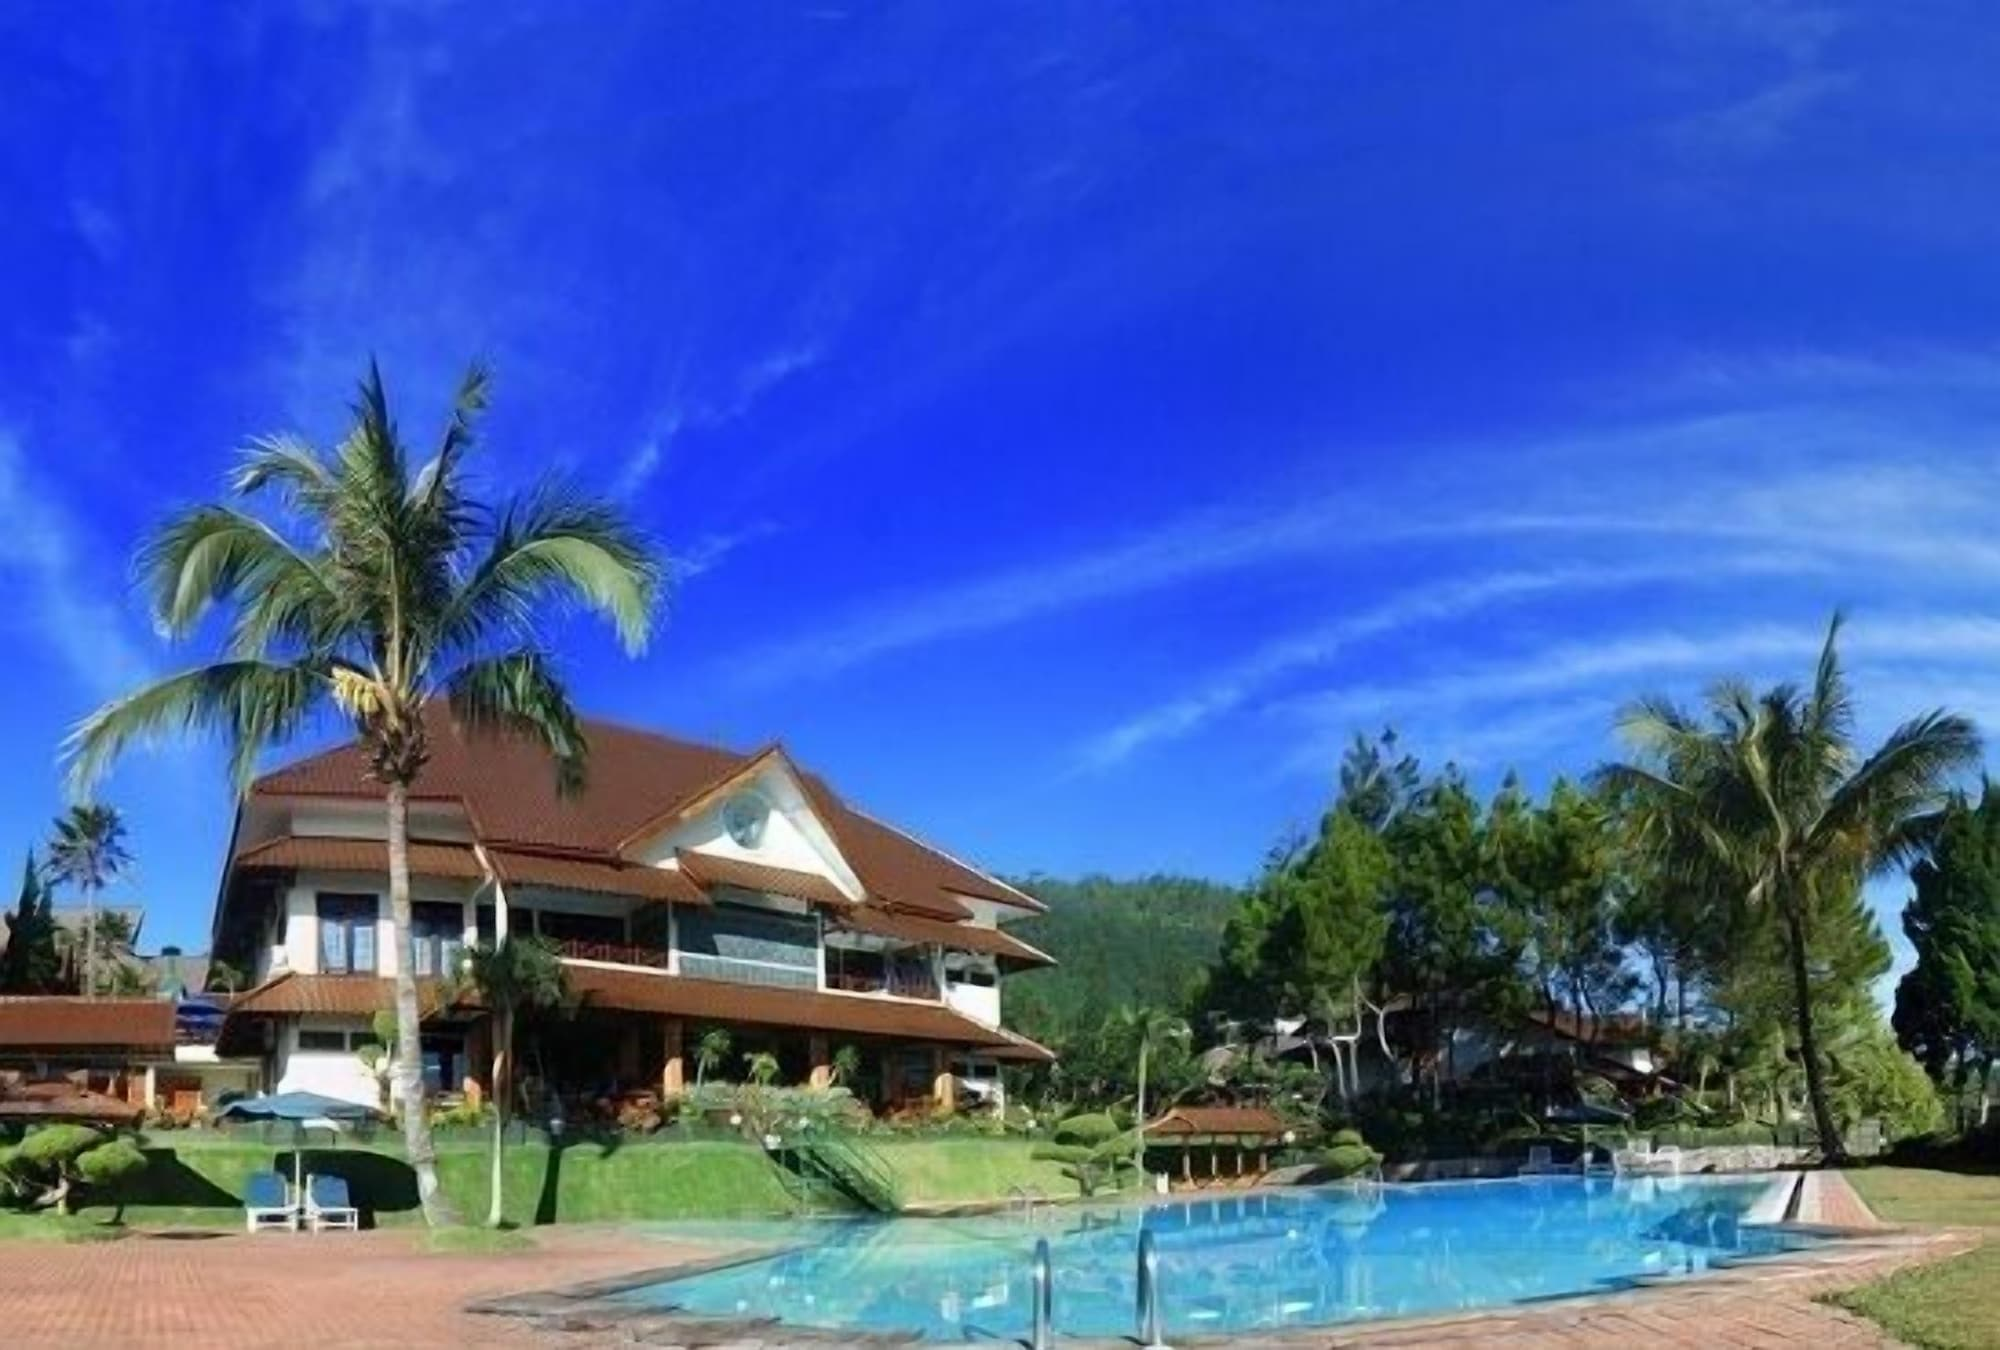 Kusuma Agrowisata Resort & Convention Hotel, Malang